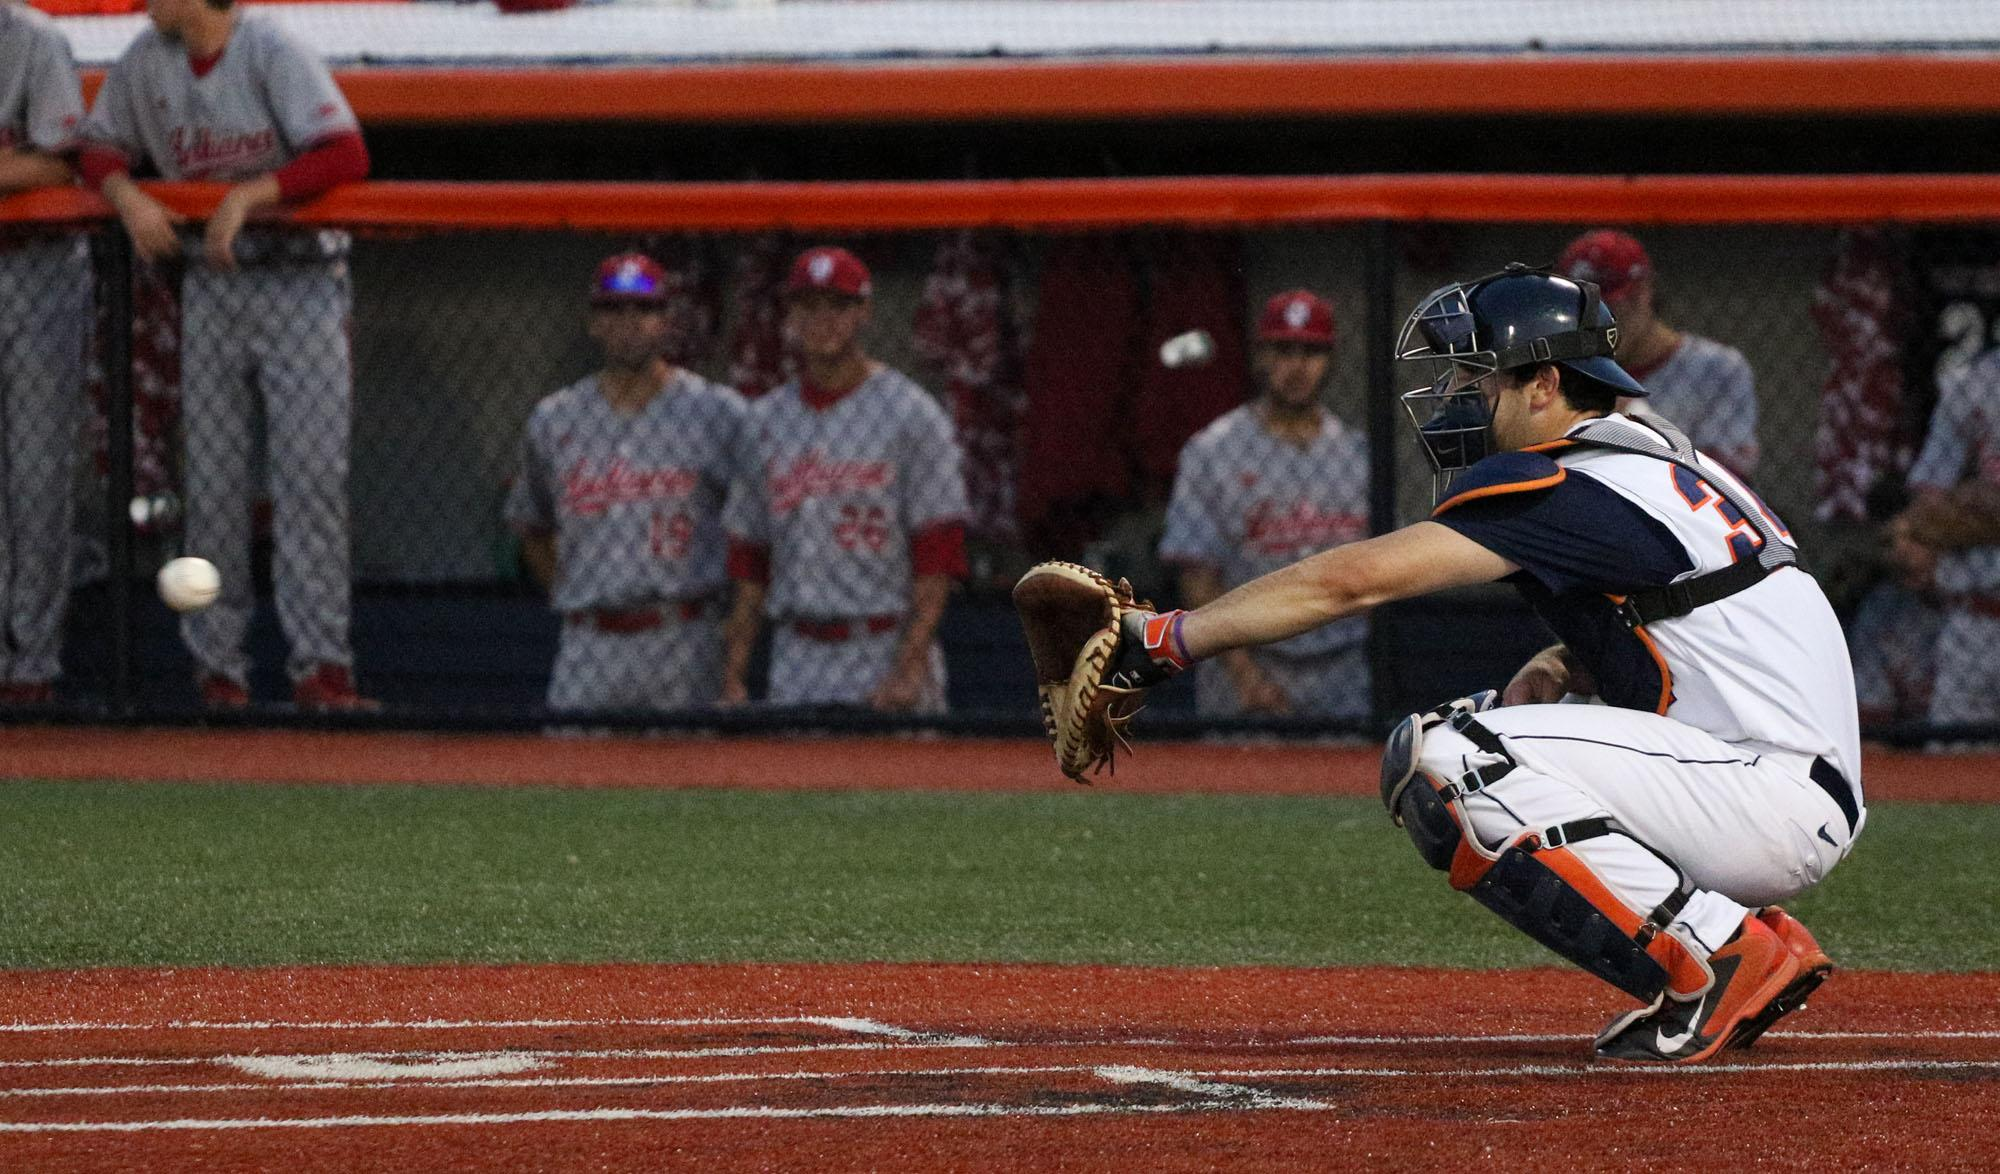 Illinois' Jason Goldstein (34) warms up before the start of the inning during the baseball game v. Indiana at Illinois Field on Friday, Apr. 17, 2015. Illinois won 5-1.